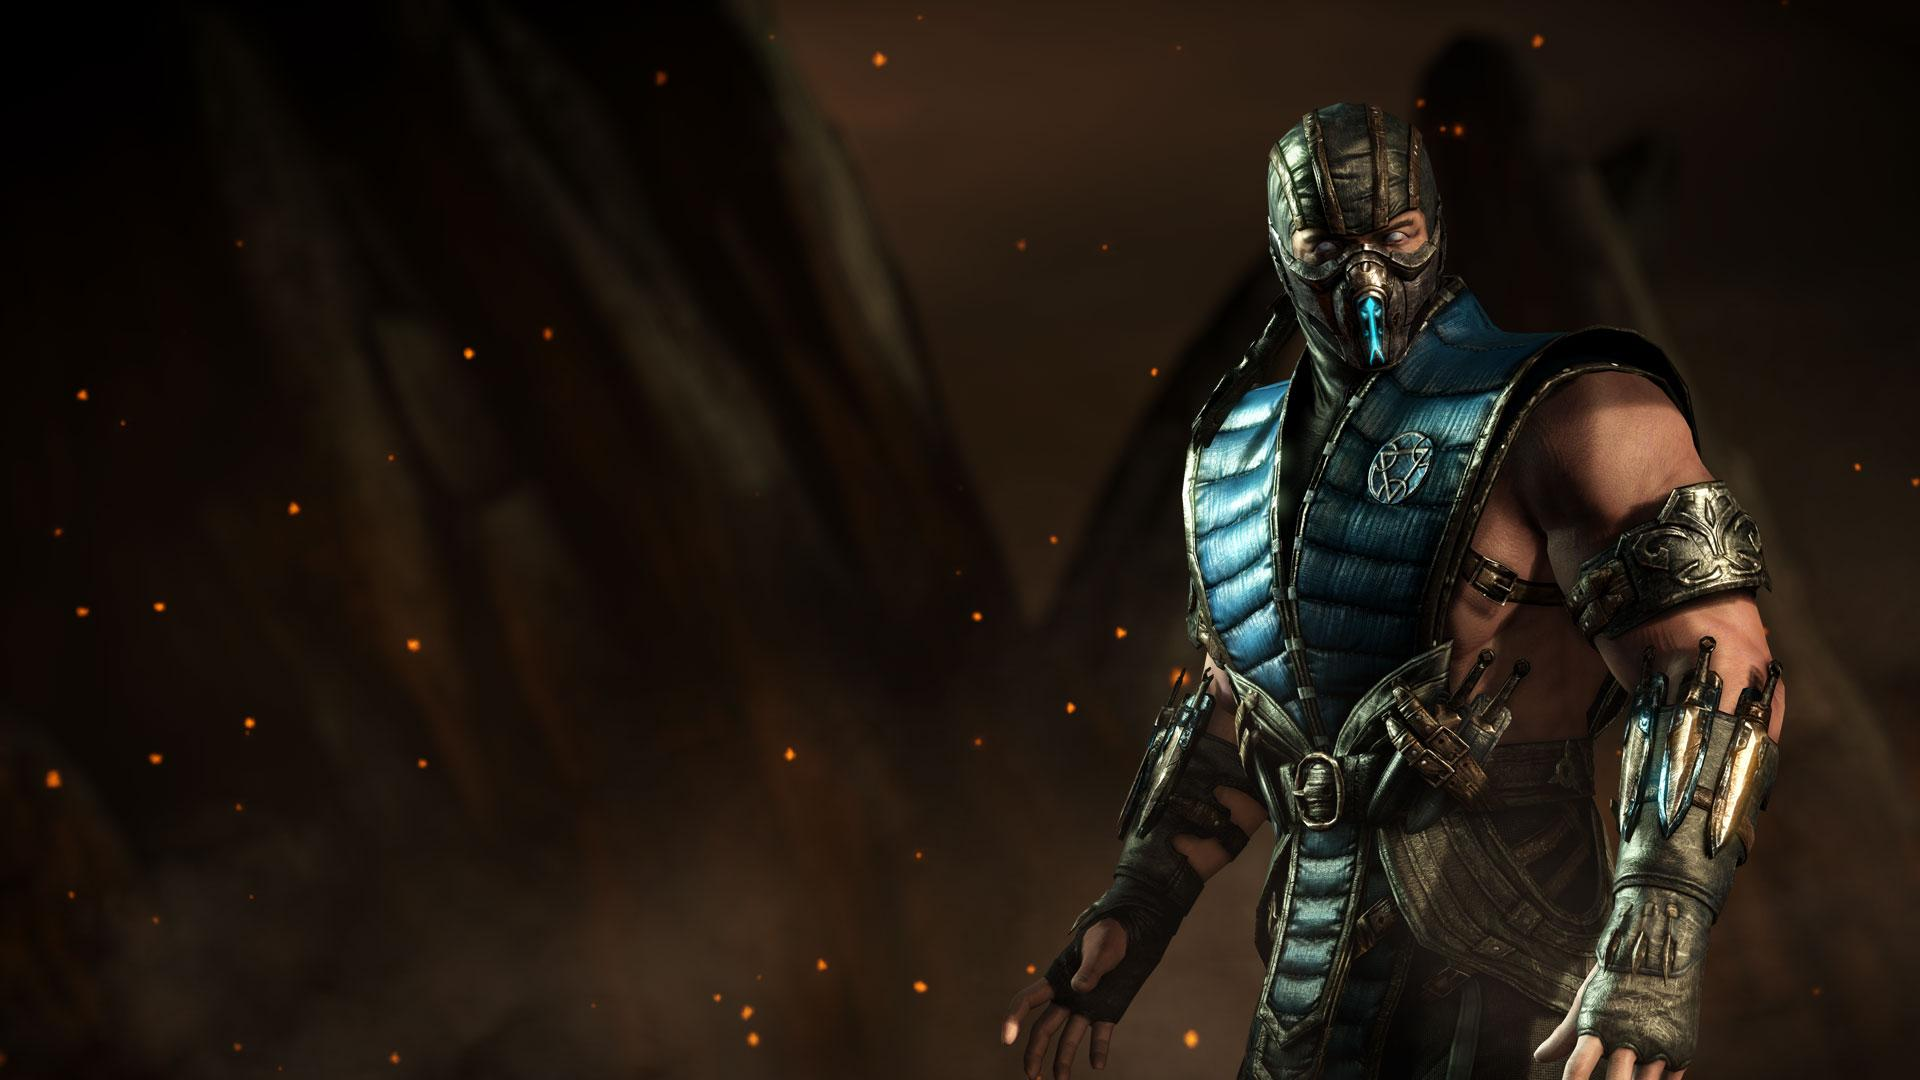 Mortal Kombat X On PS4: Amazon Shares 10 Characters Bio